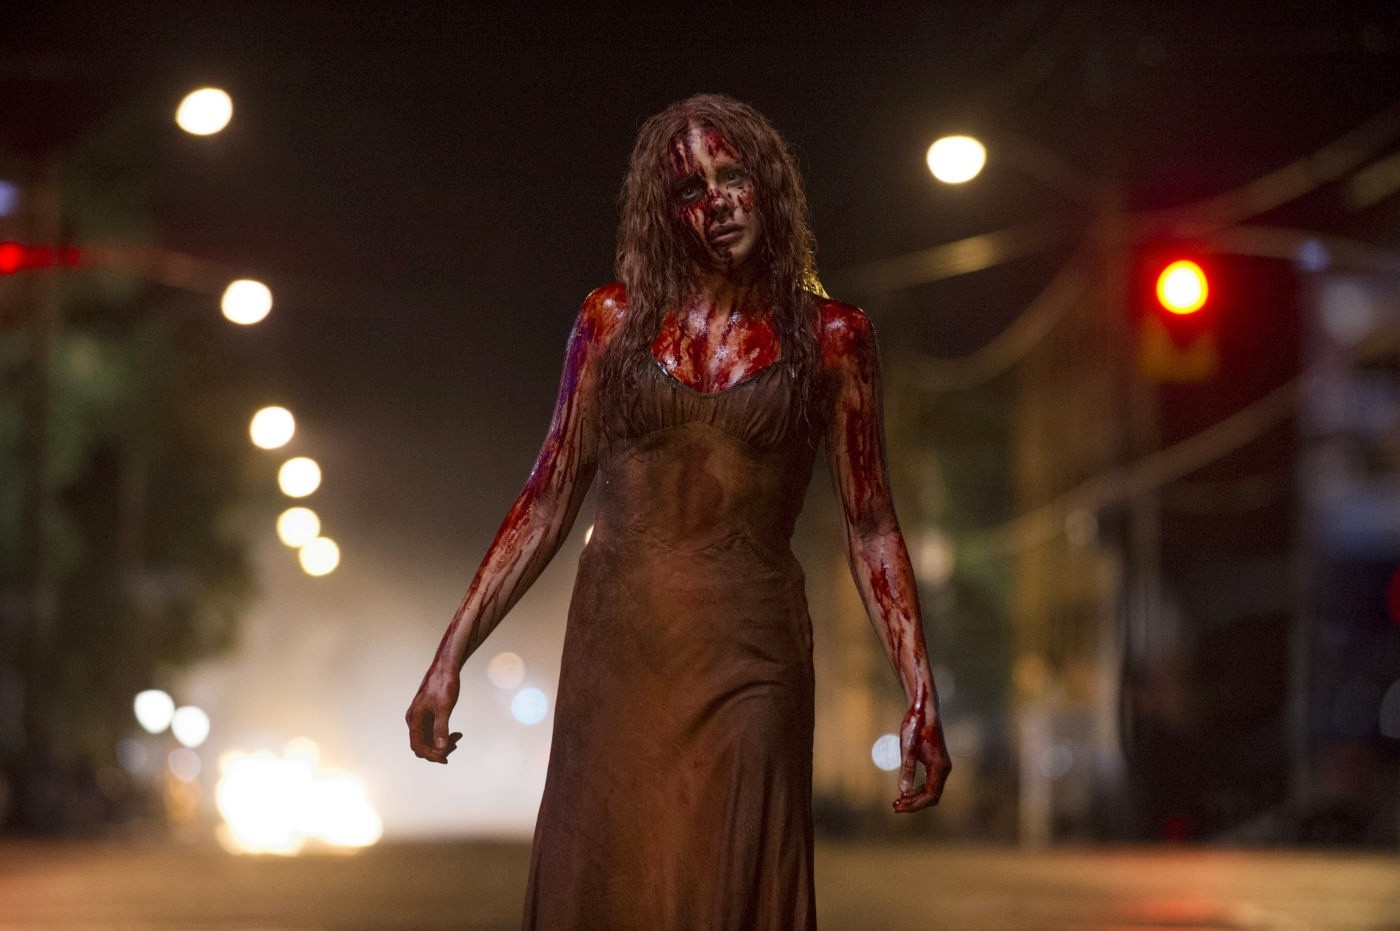 Chloe Moretz stars as Carrie White in Screen Gems' Carrie (2013)